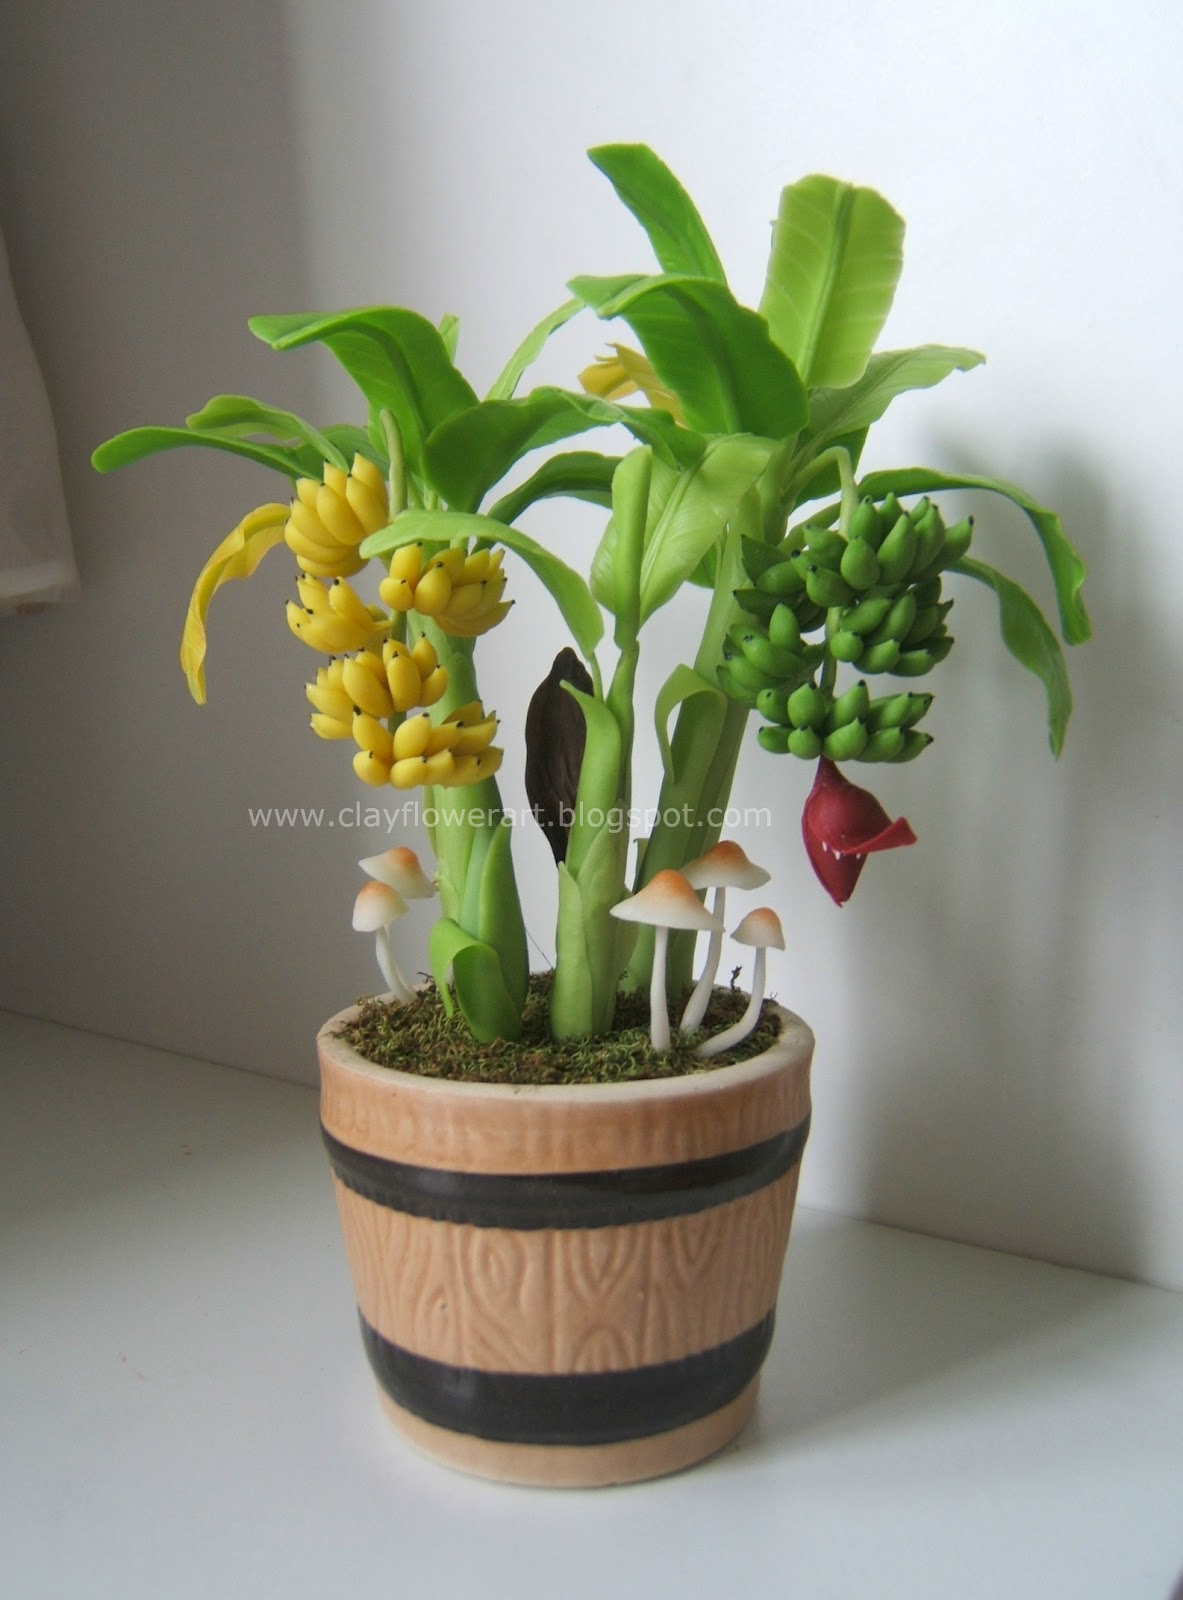 Miniature Banana Plant Clay Flower Art